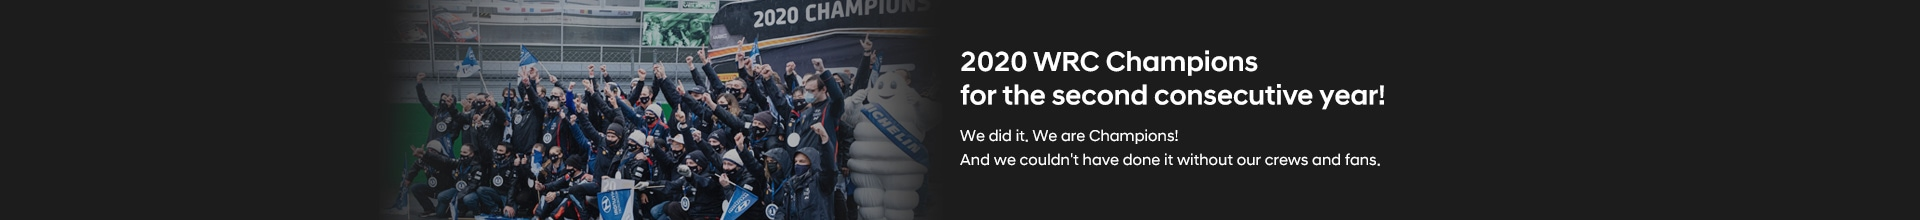 2020 WRC Champions for the second consecutive year!